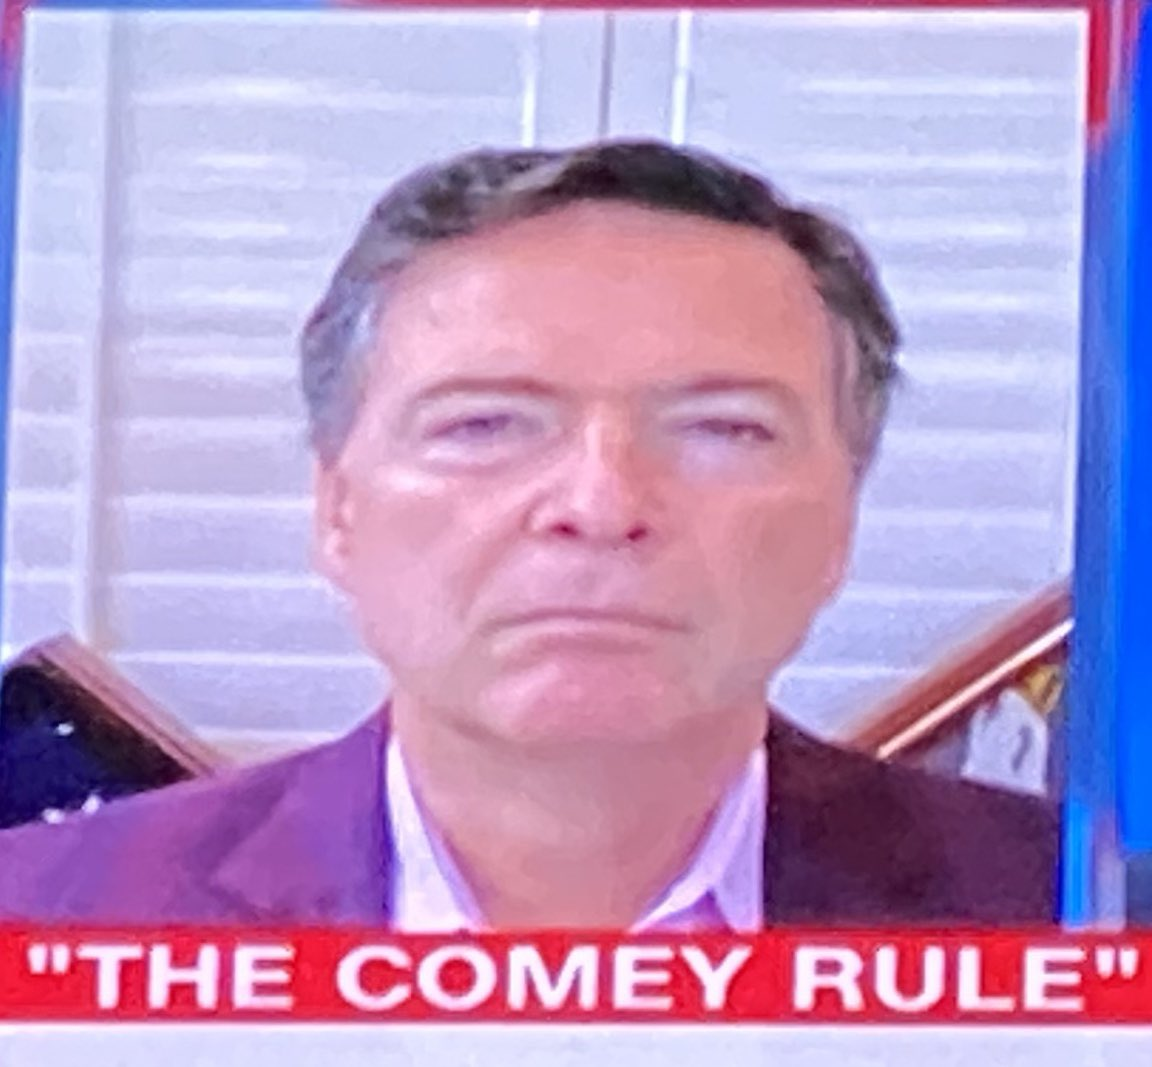 """Jim Comey today pushing @Showtime's """"The Comey Rule.""""  Apparently, """"the rule"""" includes entrapment, fraudulent sources, and abusive investigations all to destroy a presidency. https://t.co/B2pc3ayj7R"""